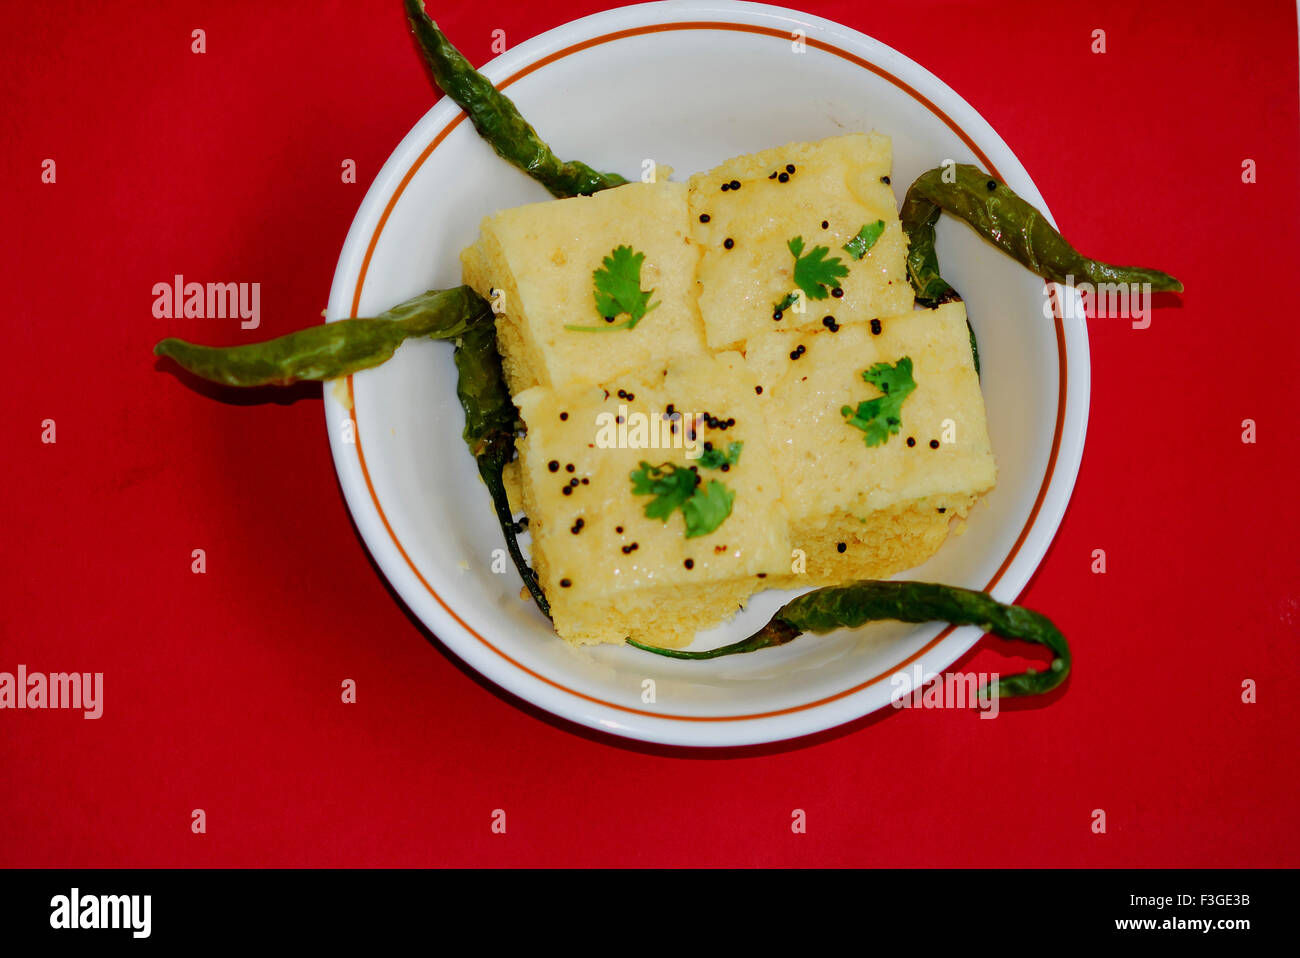 Four Pieces of Yellow Khaman or Dhoklas With Fried Green Chilies Served in Dish - Stock Image